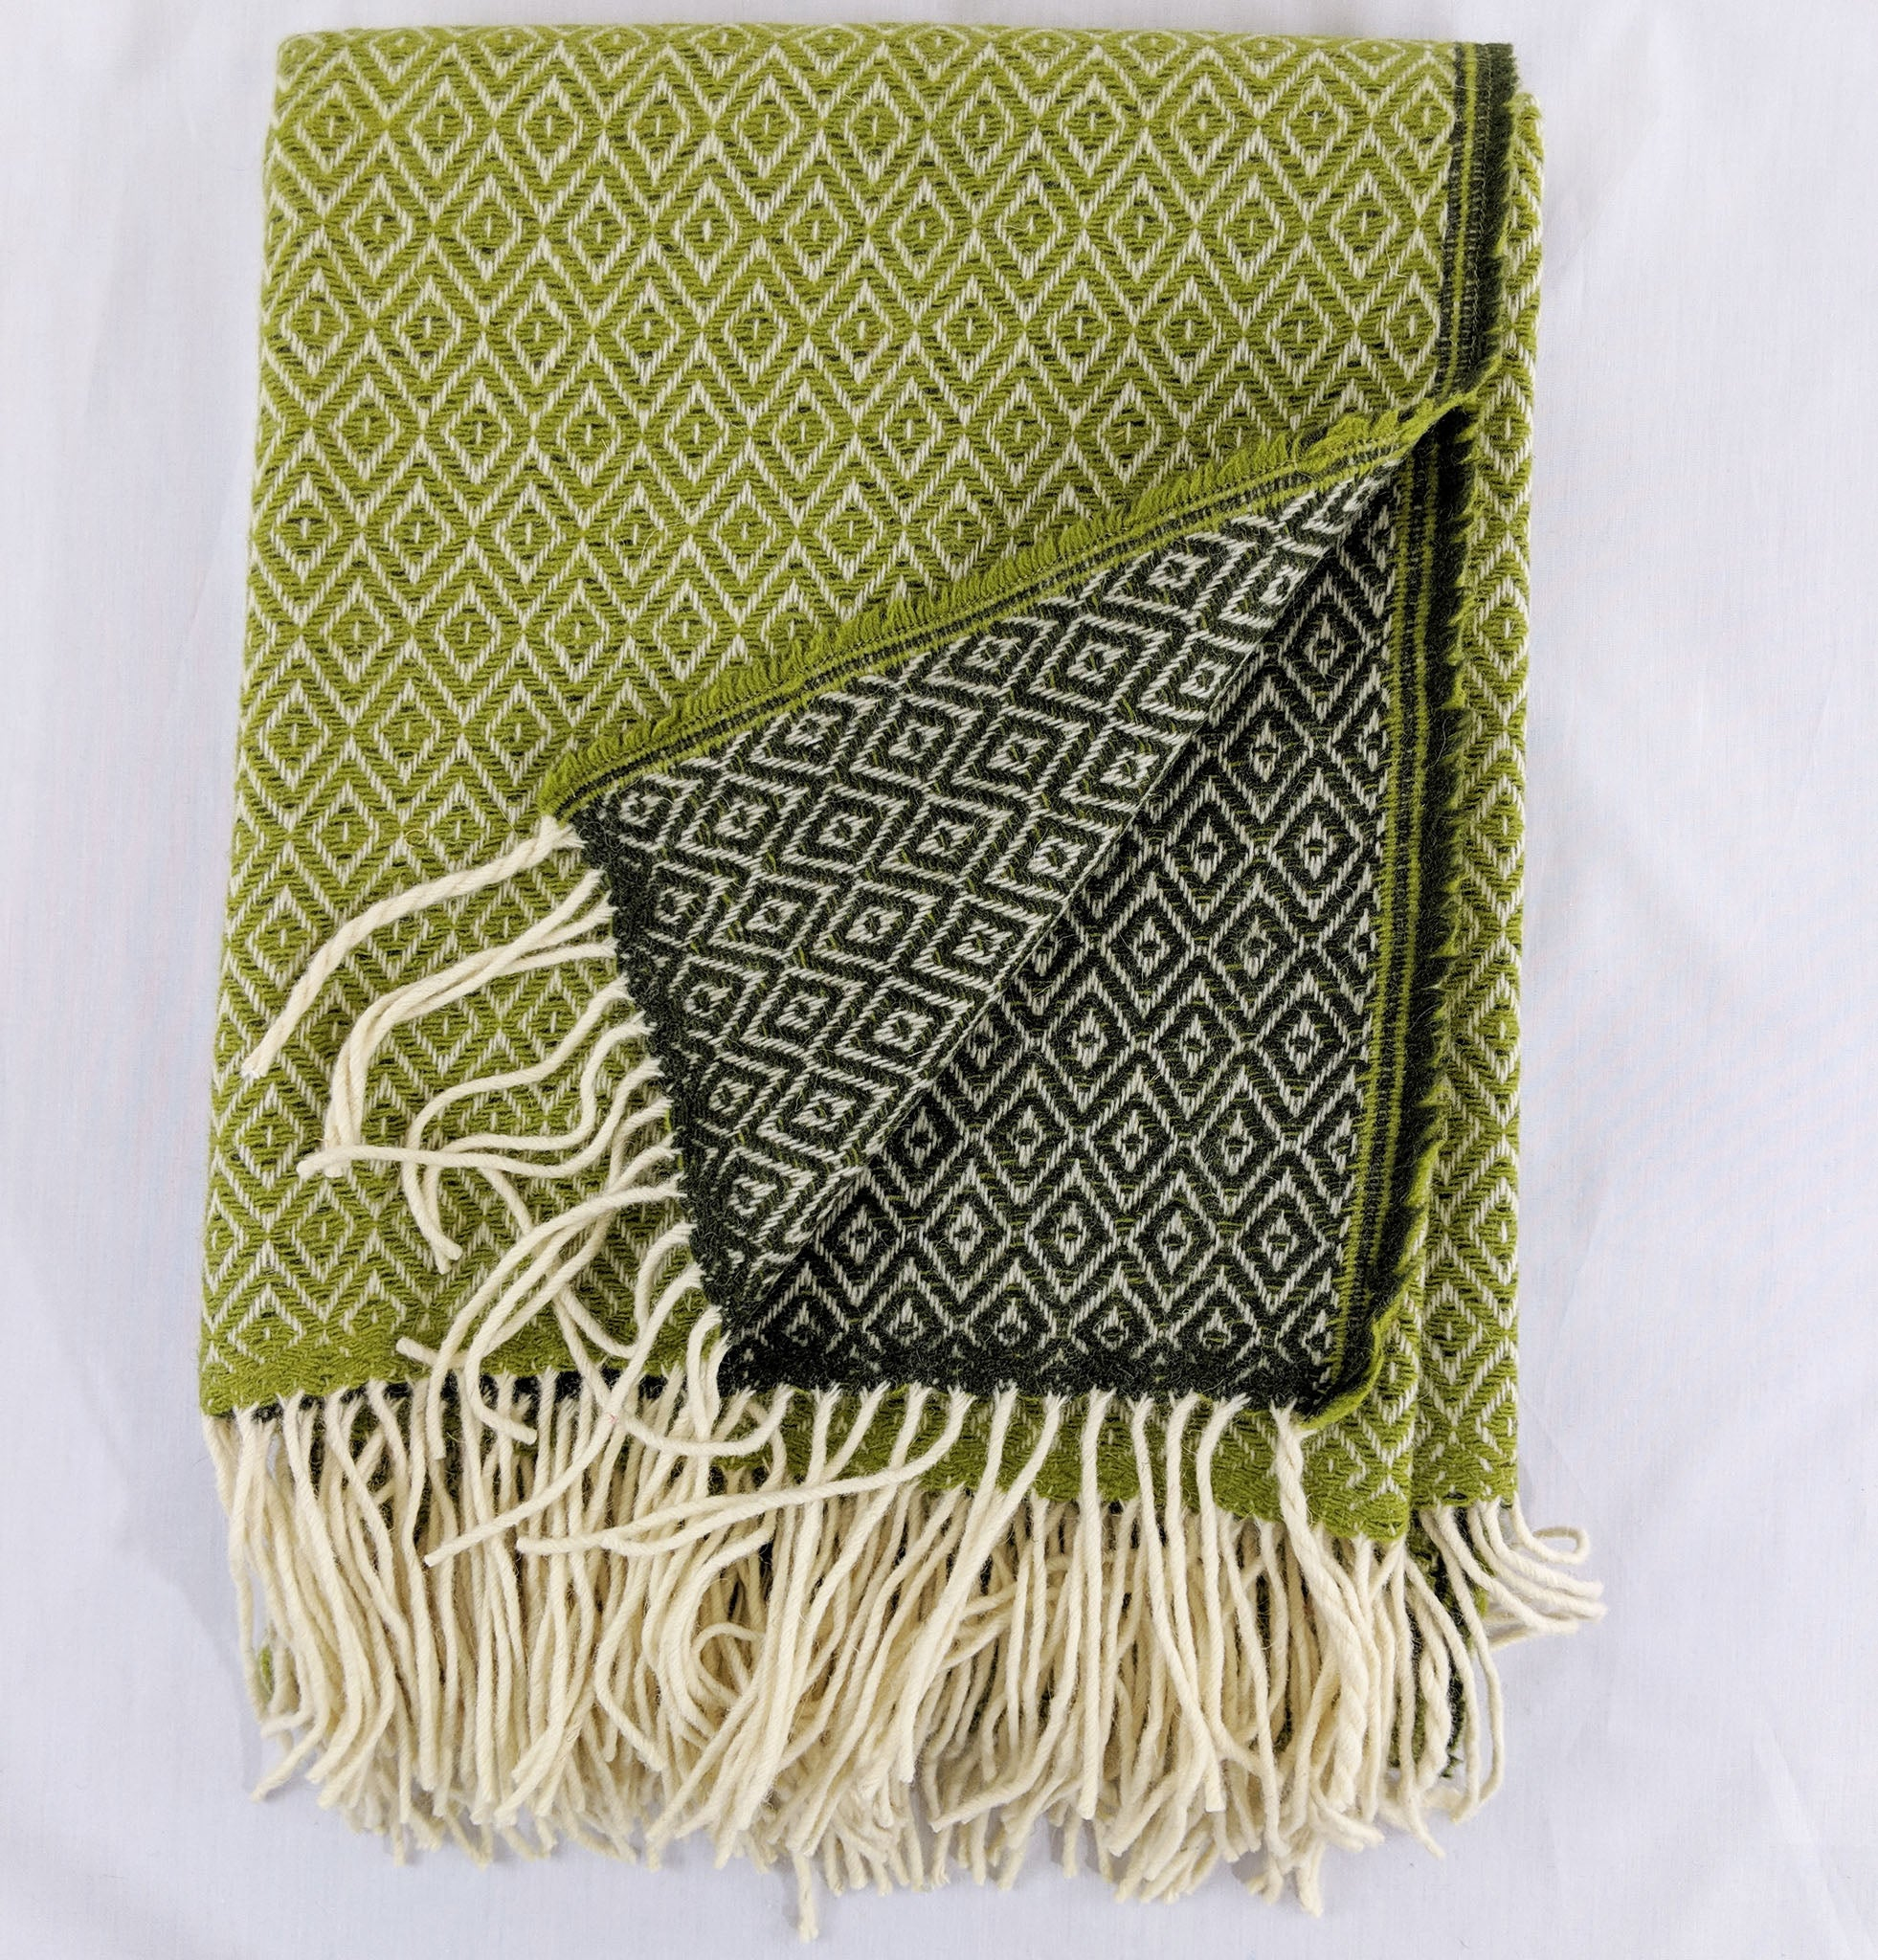 Dark green and light green Merino throw with double lozenge pattern against a white background